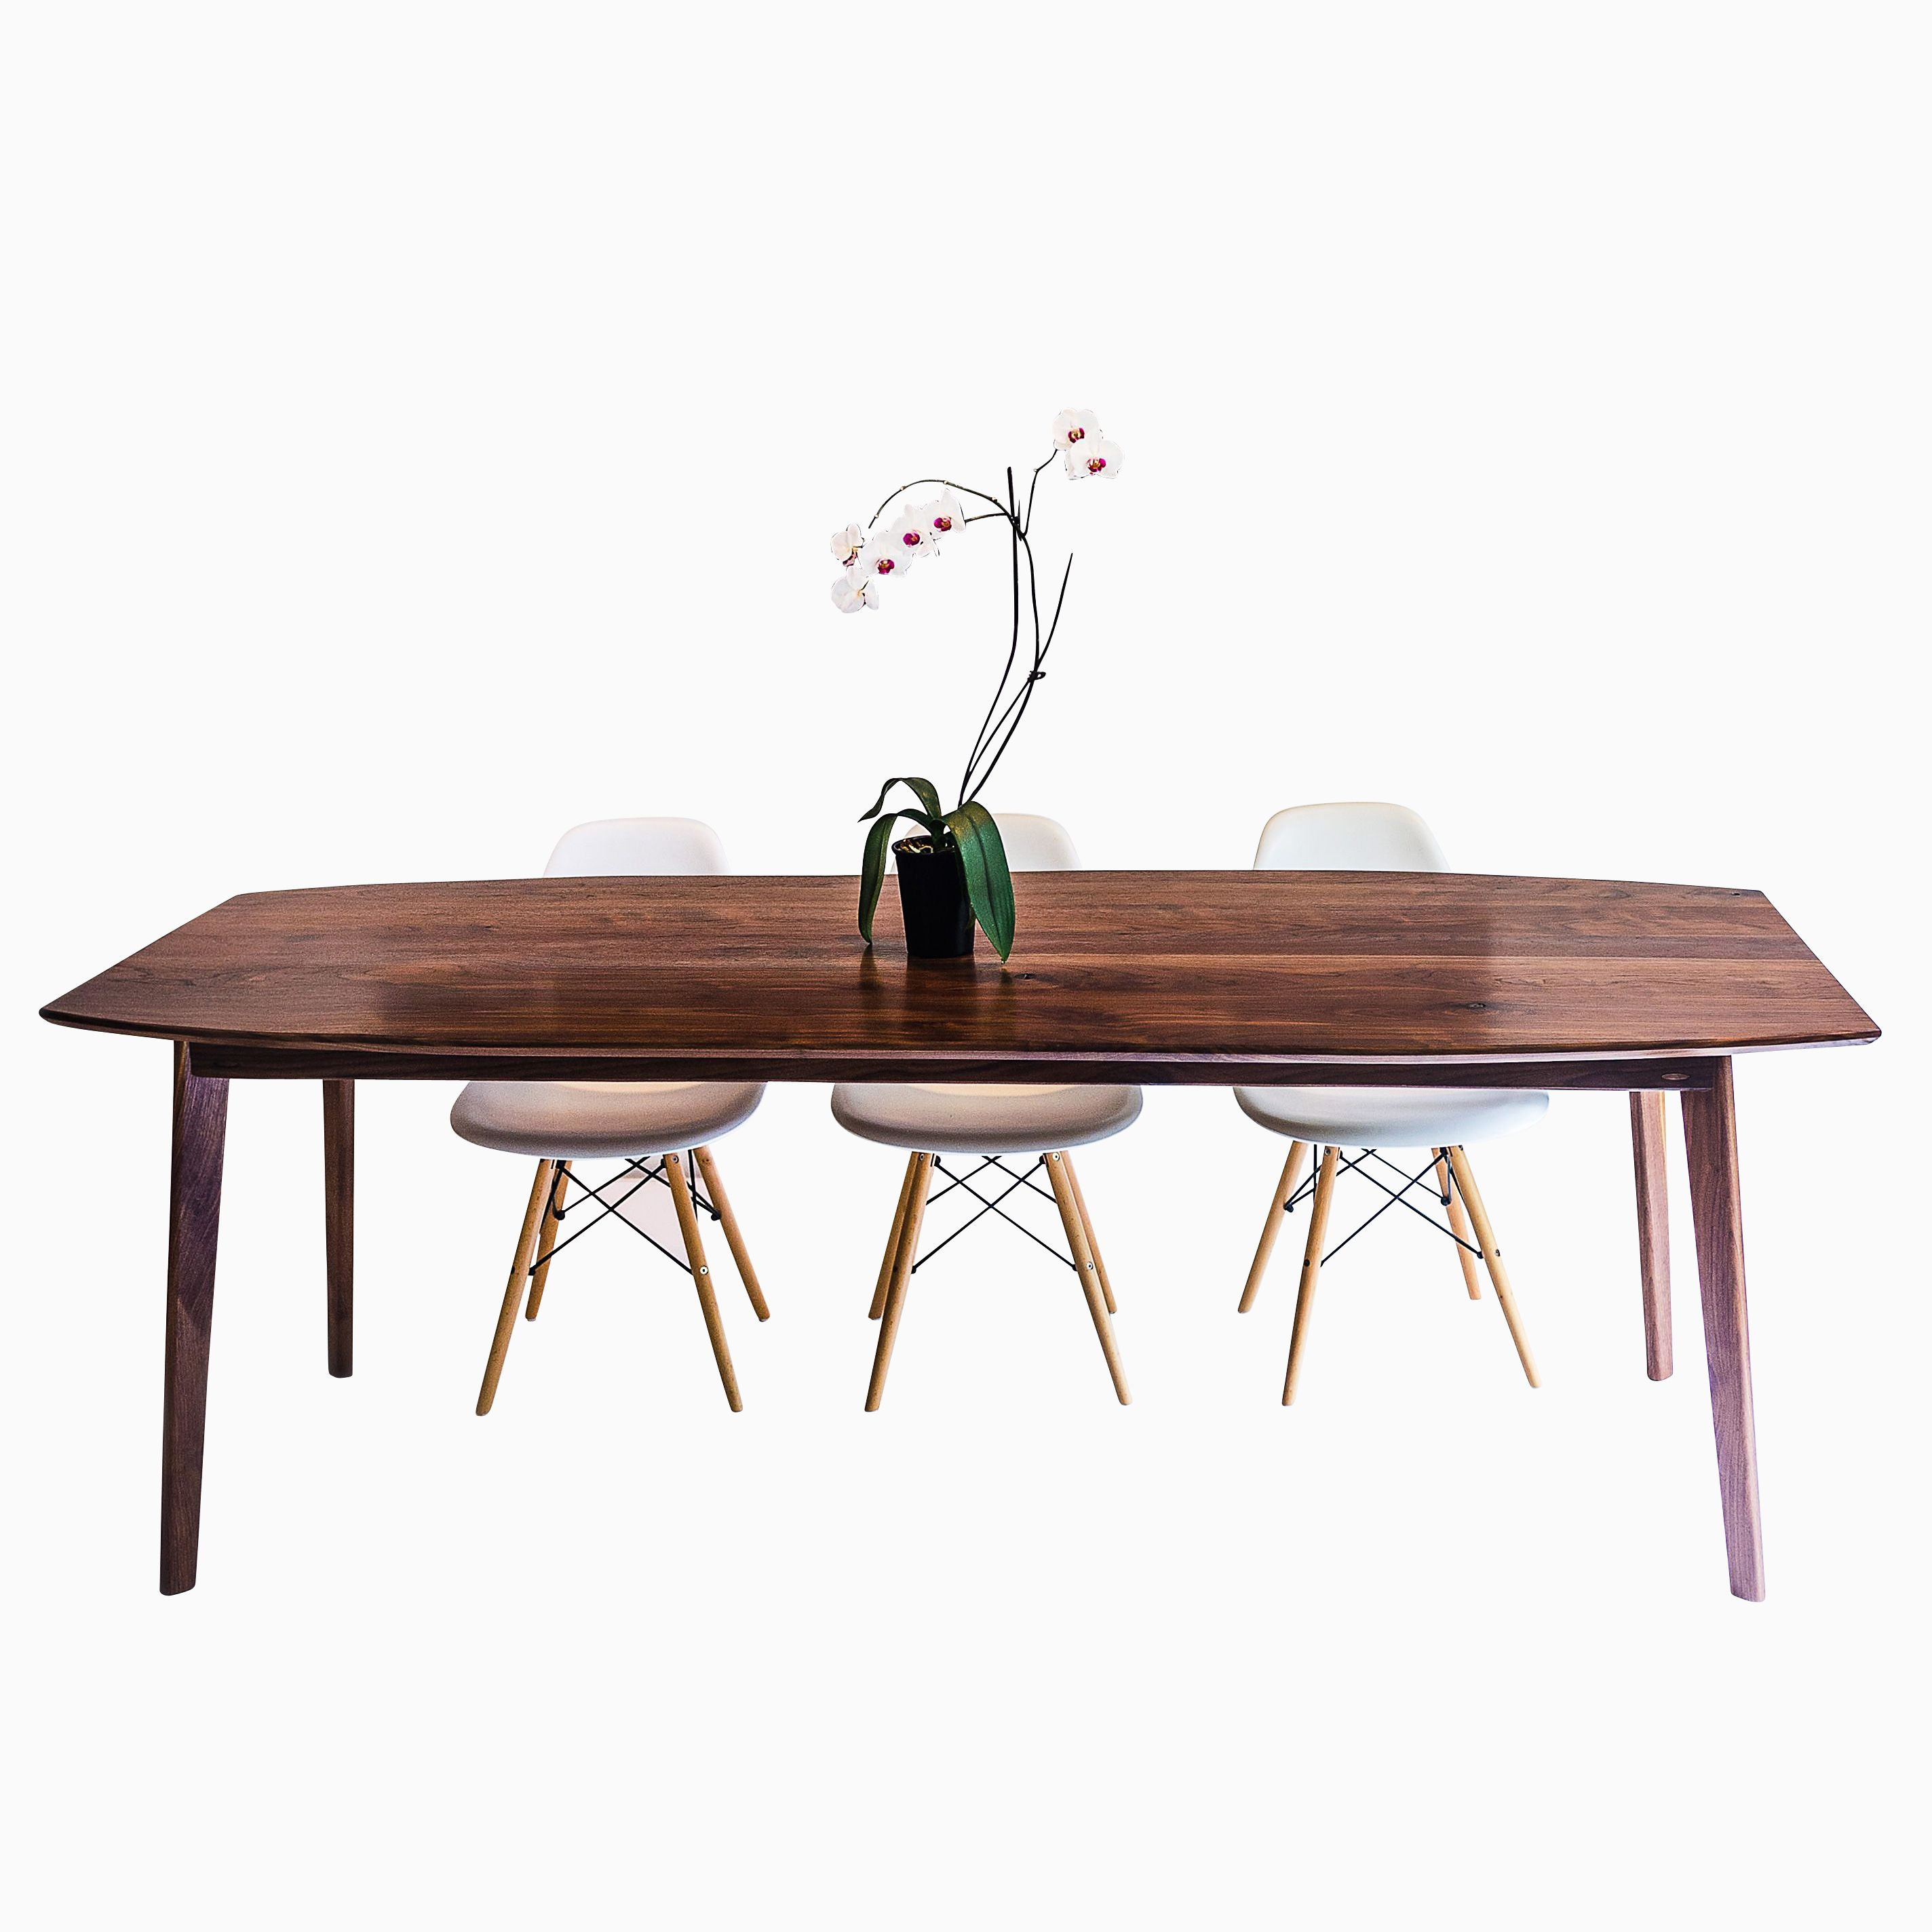 The Santa Monica: Solid Black Walnut Dining Table, Mid Century Modern